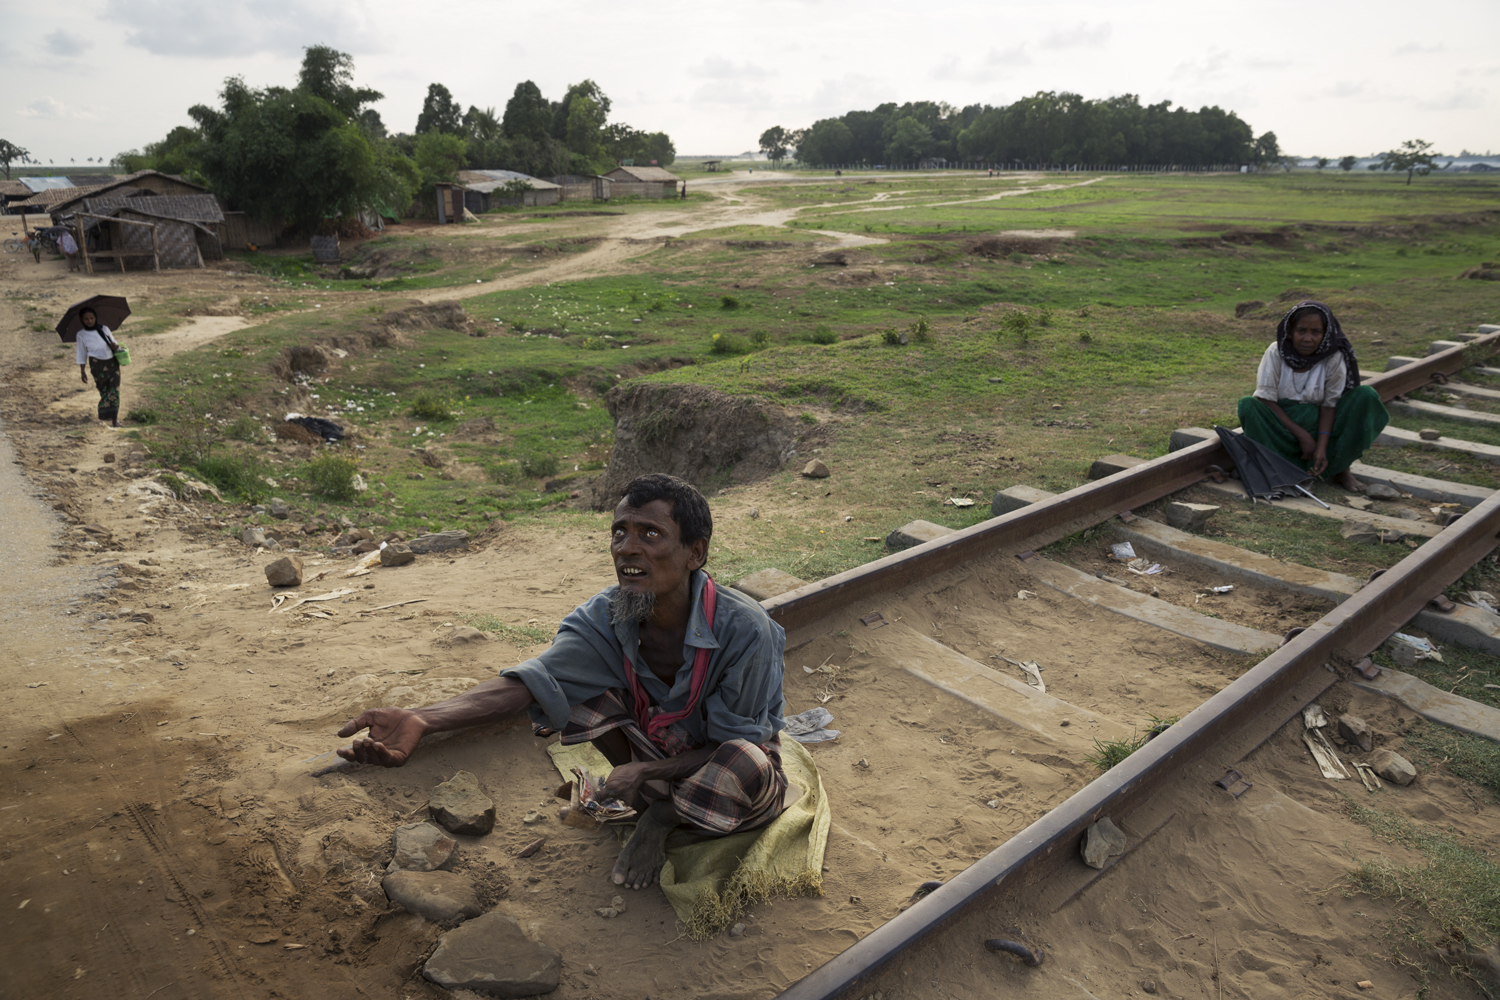 A blind beggar on railway tracks between two IDP camps.